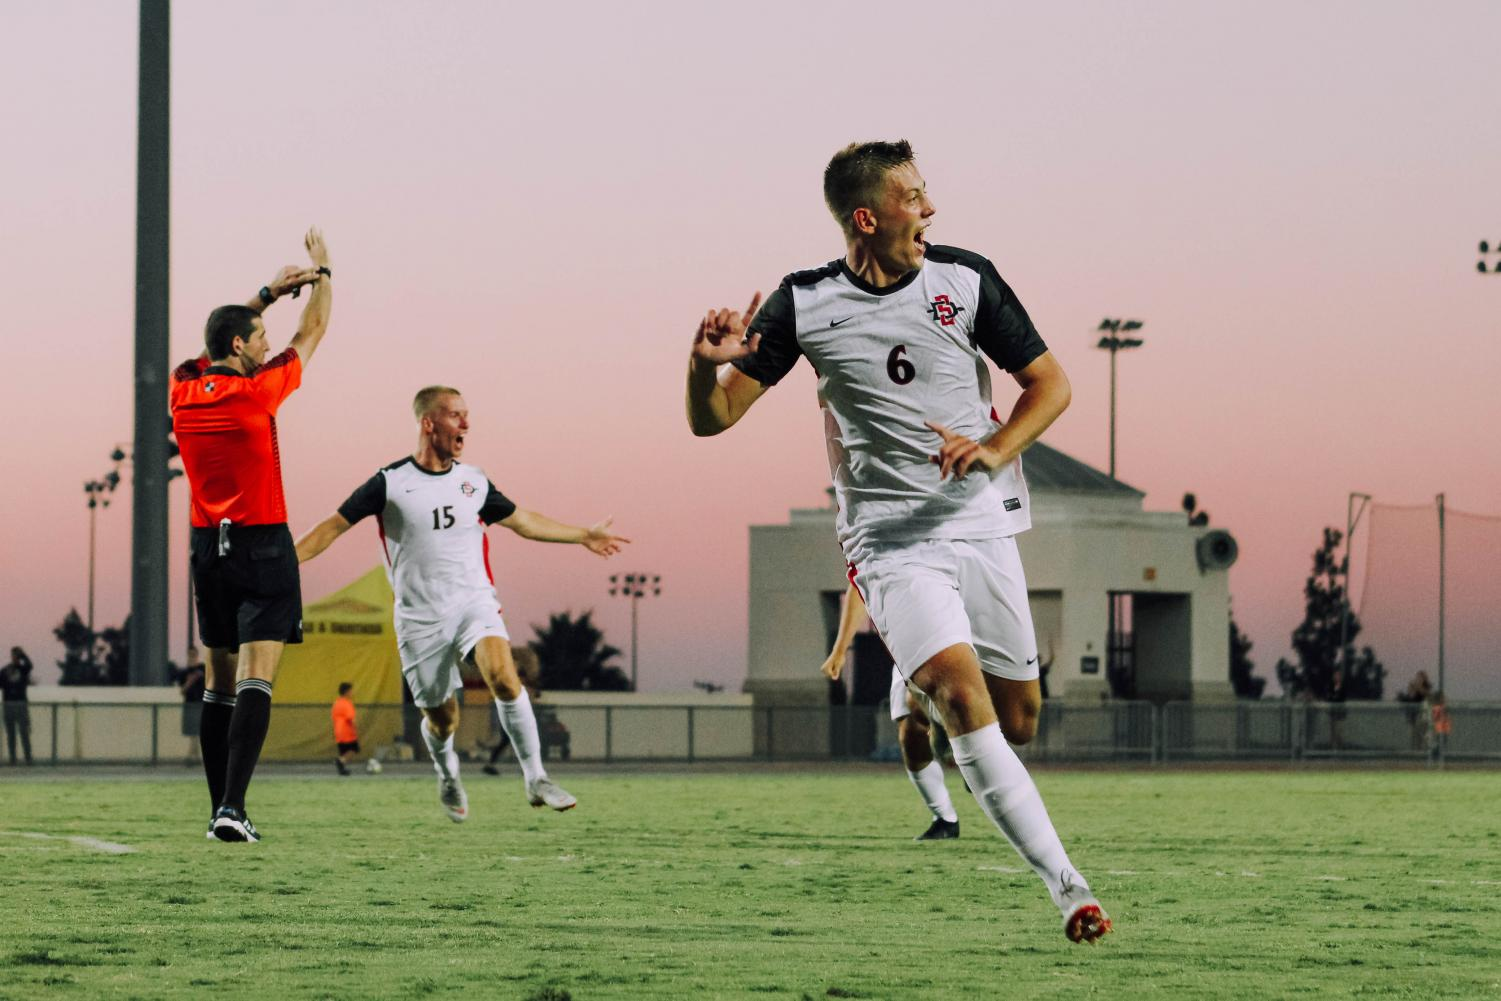 Junior midfeidler Emil Kjellker celebrates after scoring the game-winning goal in overtime of the Aztecs 2-1 victory over UC Irvine on Sept. 9 at the SDSU Sports Deck.